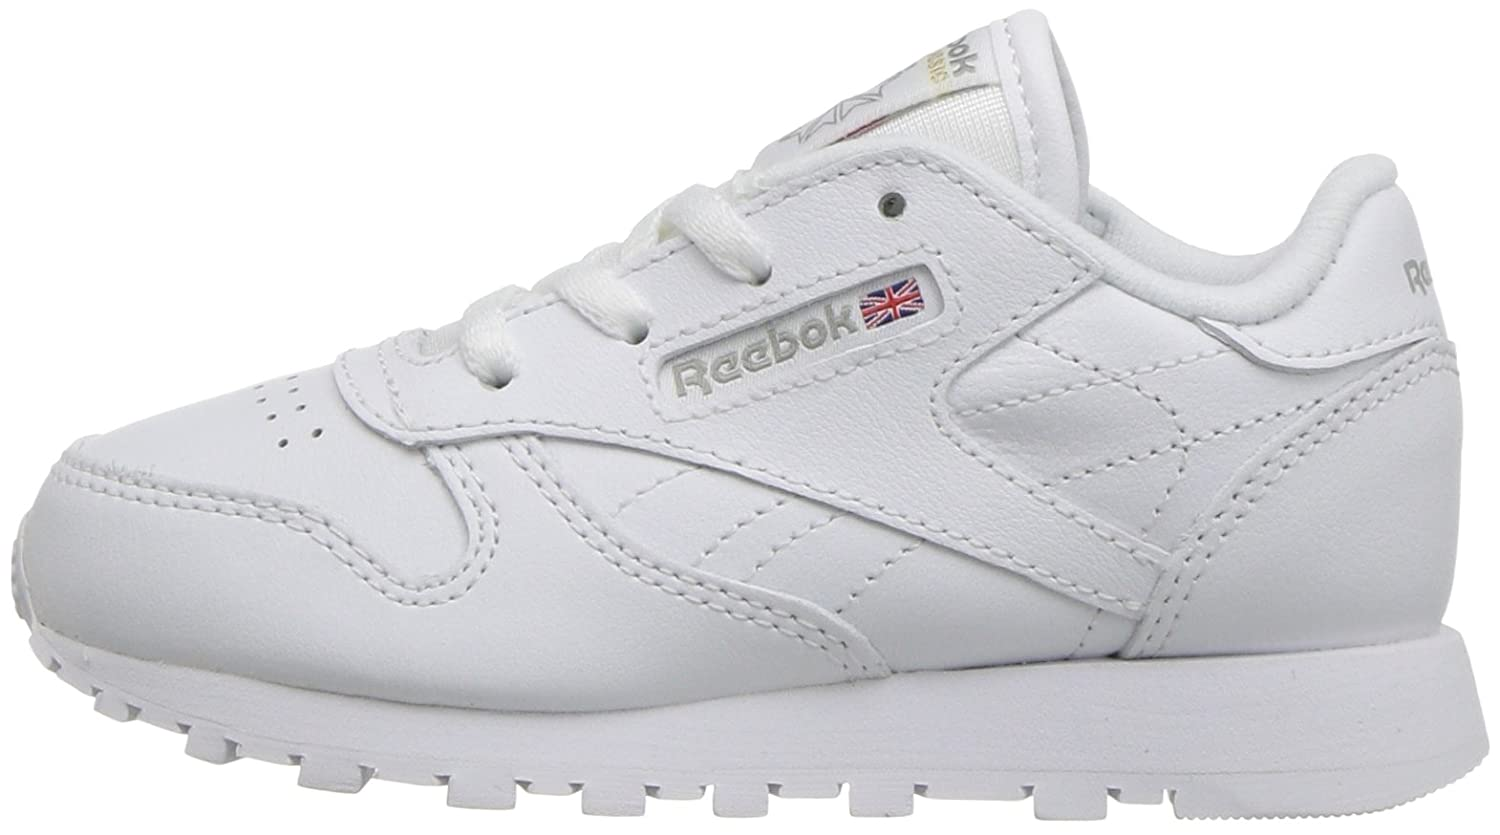 Reebok Infant//Toddler Classic Leather Sneaker